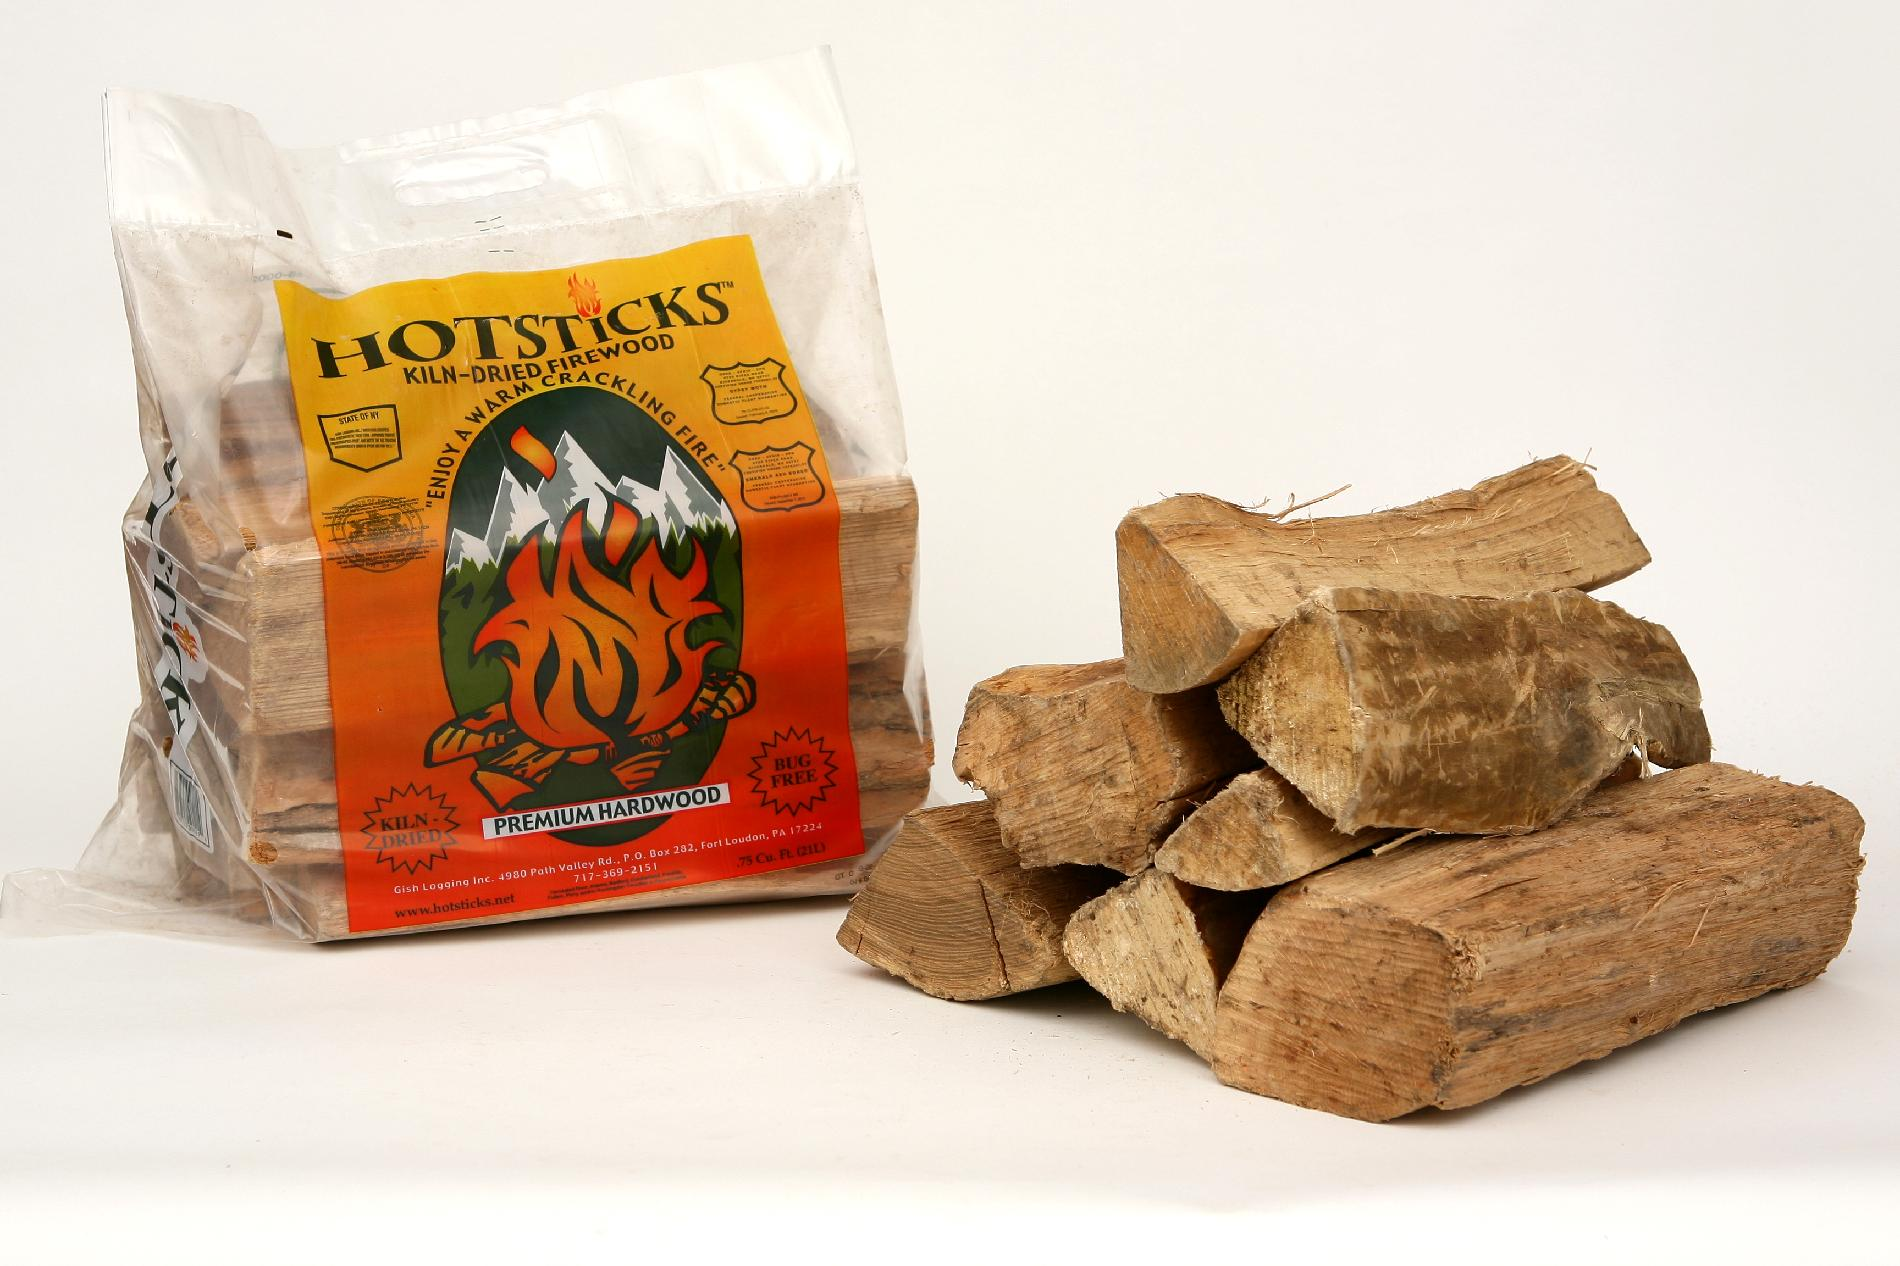 10 Minute Solution Hotsticks .75 Cubic Feet with Starter - GISH LOGGING, INC.